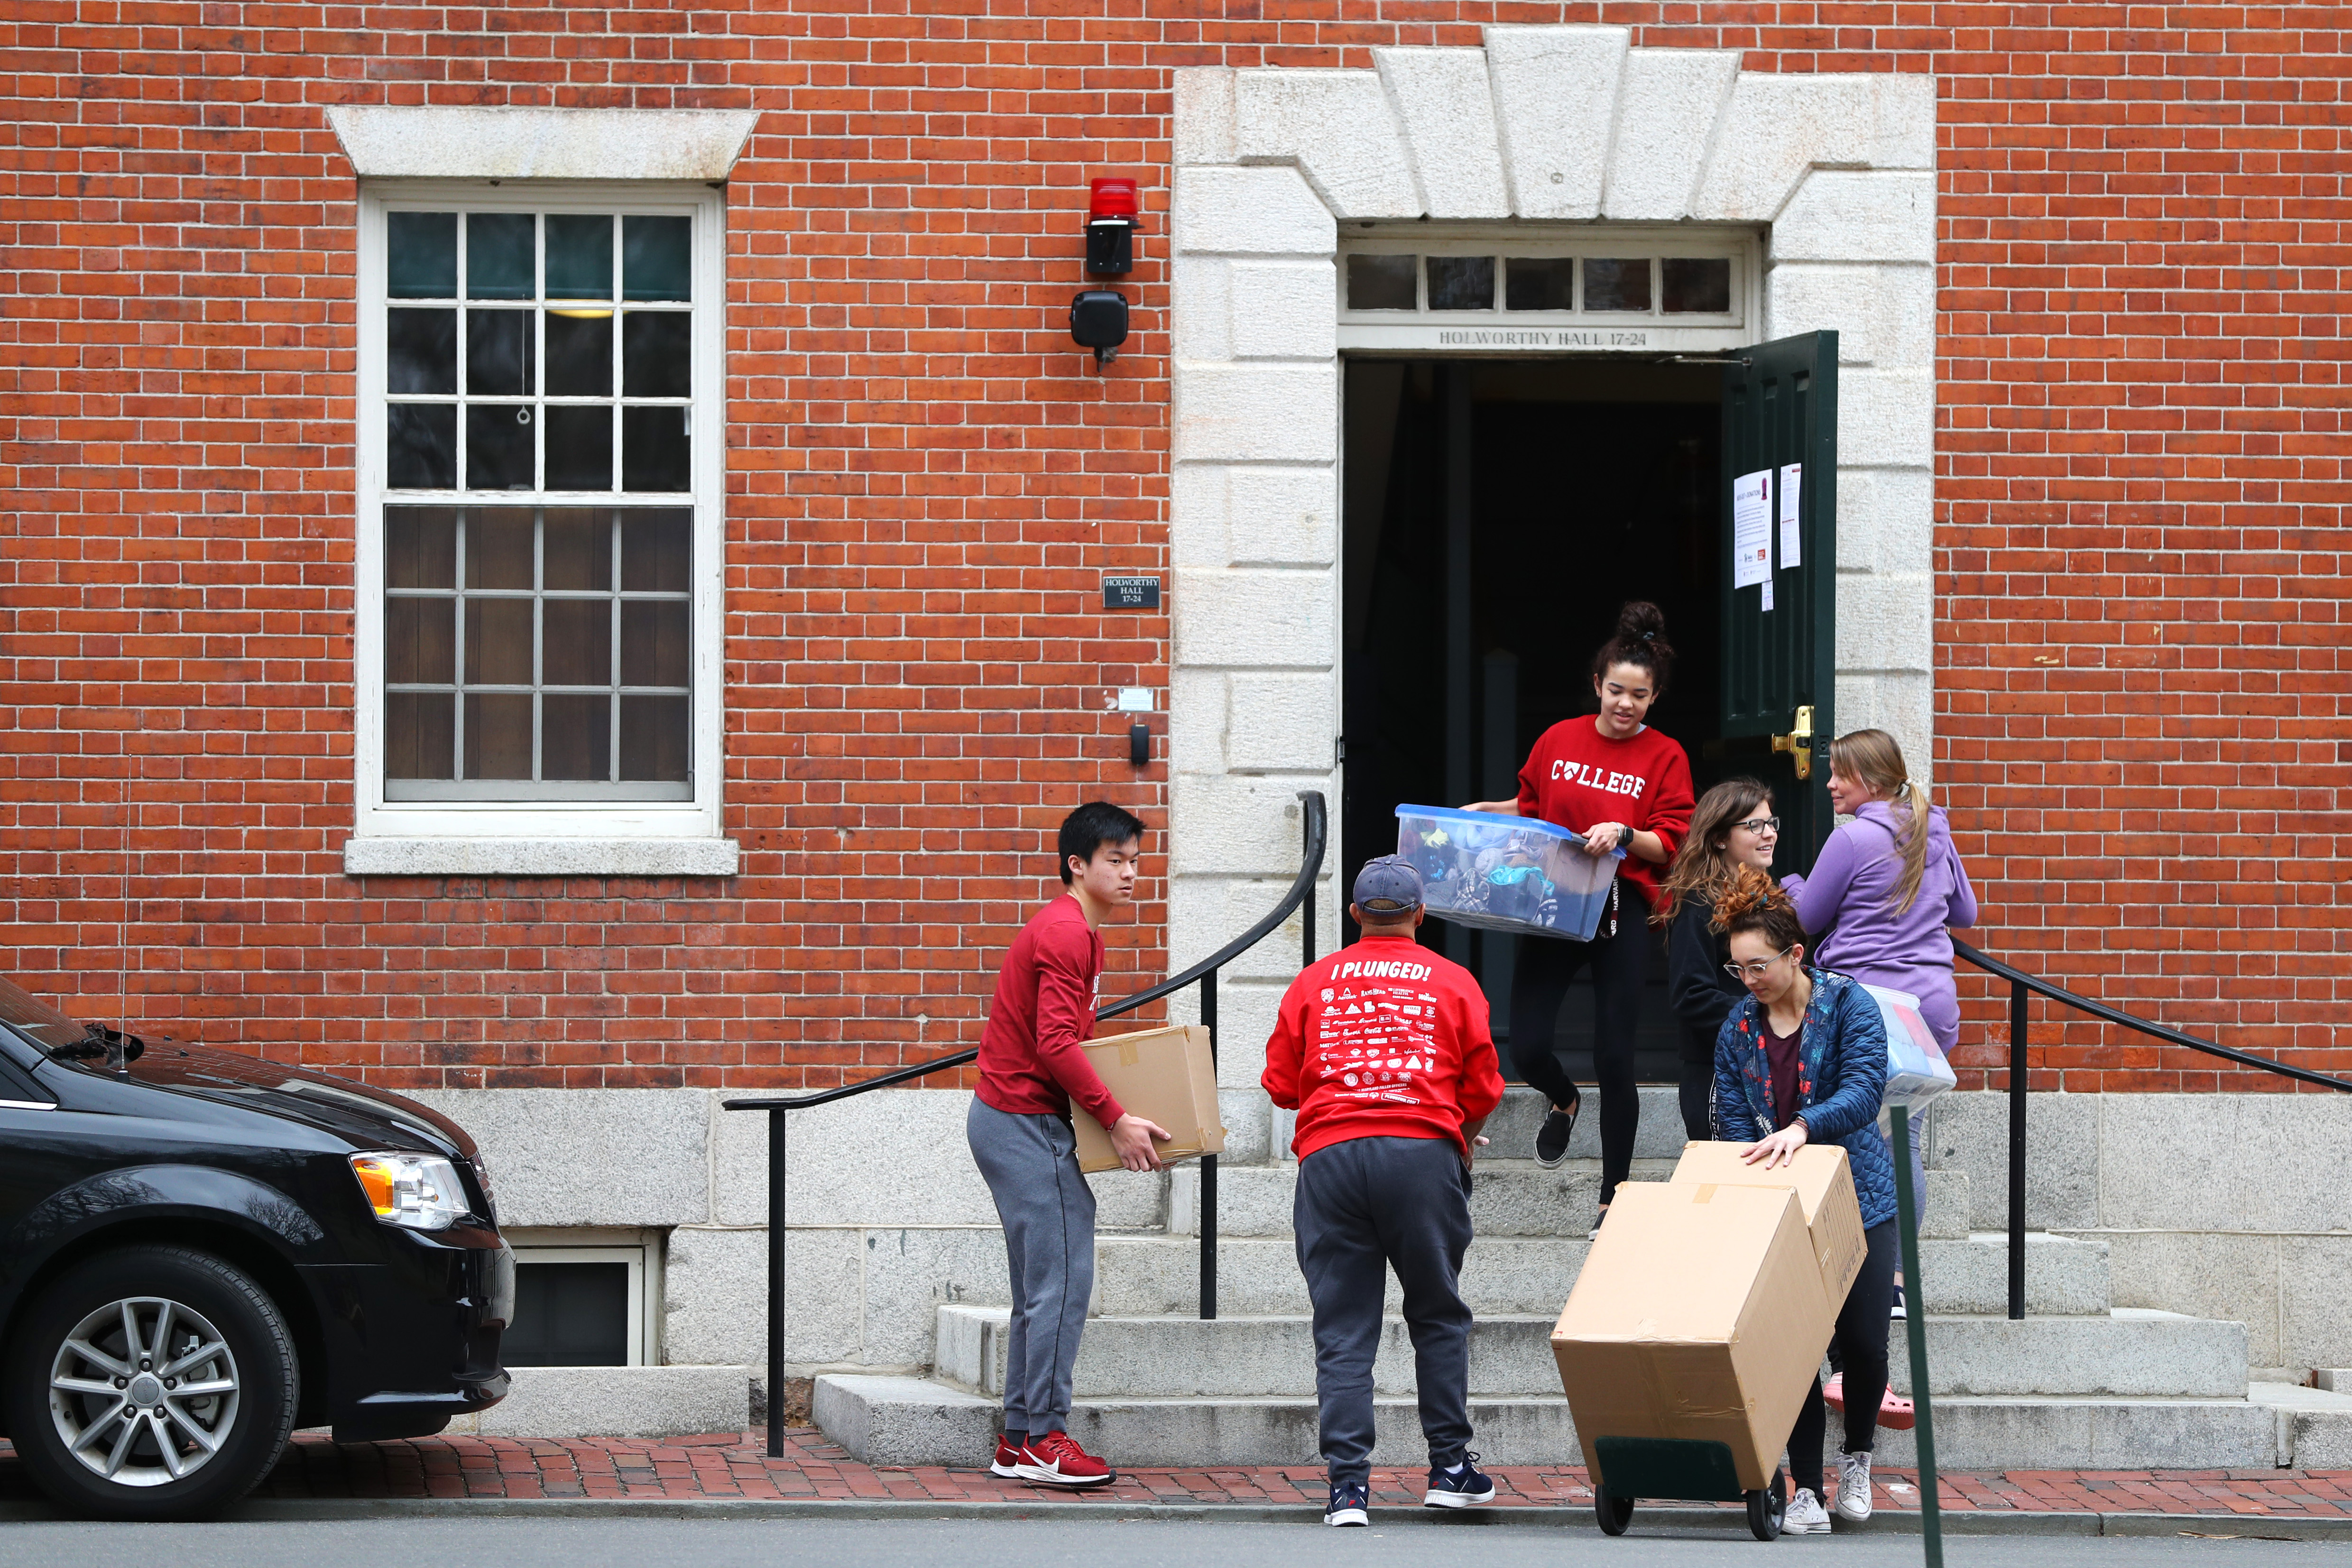 CAMBRIDGE, MASSACHUSETTS - MARCH 12: Students move out of dorm rooms on Harvard Yard on the campus of Harvard University on March 12, 2020 in Cambridge, Massachusetts. Students have been asked to move out of their dorms by March 15 due to the Coronavirus (COVID-19) risk. (Photo by Maddie Meyer/Getty Images)